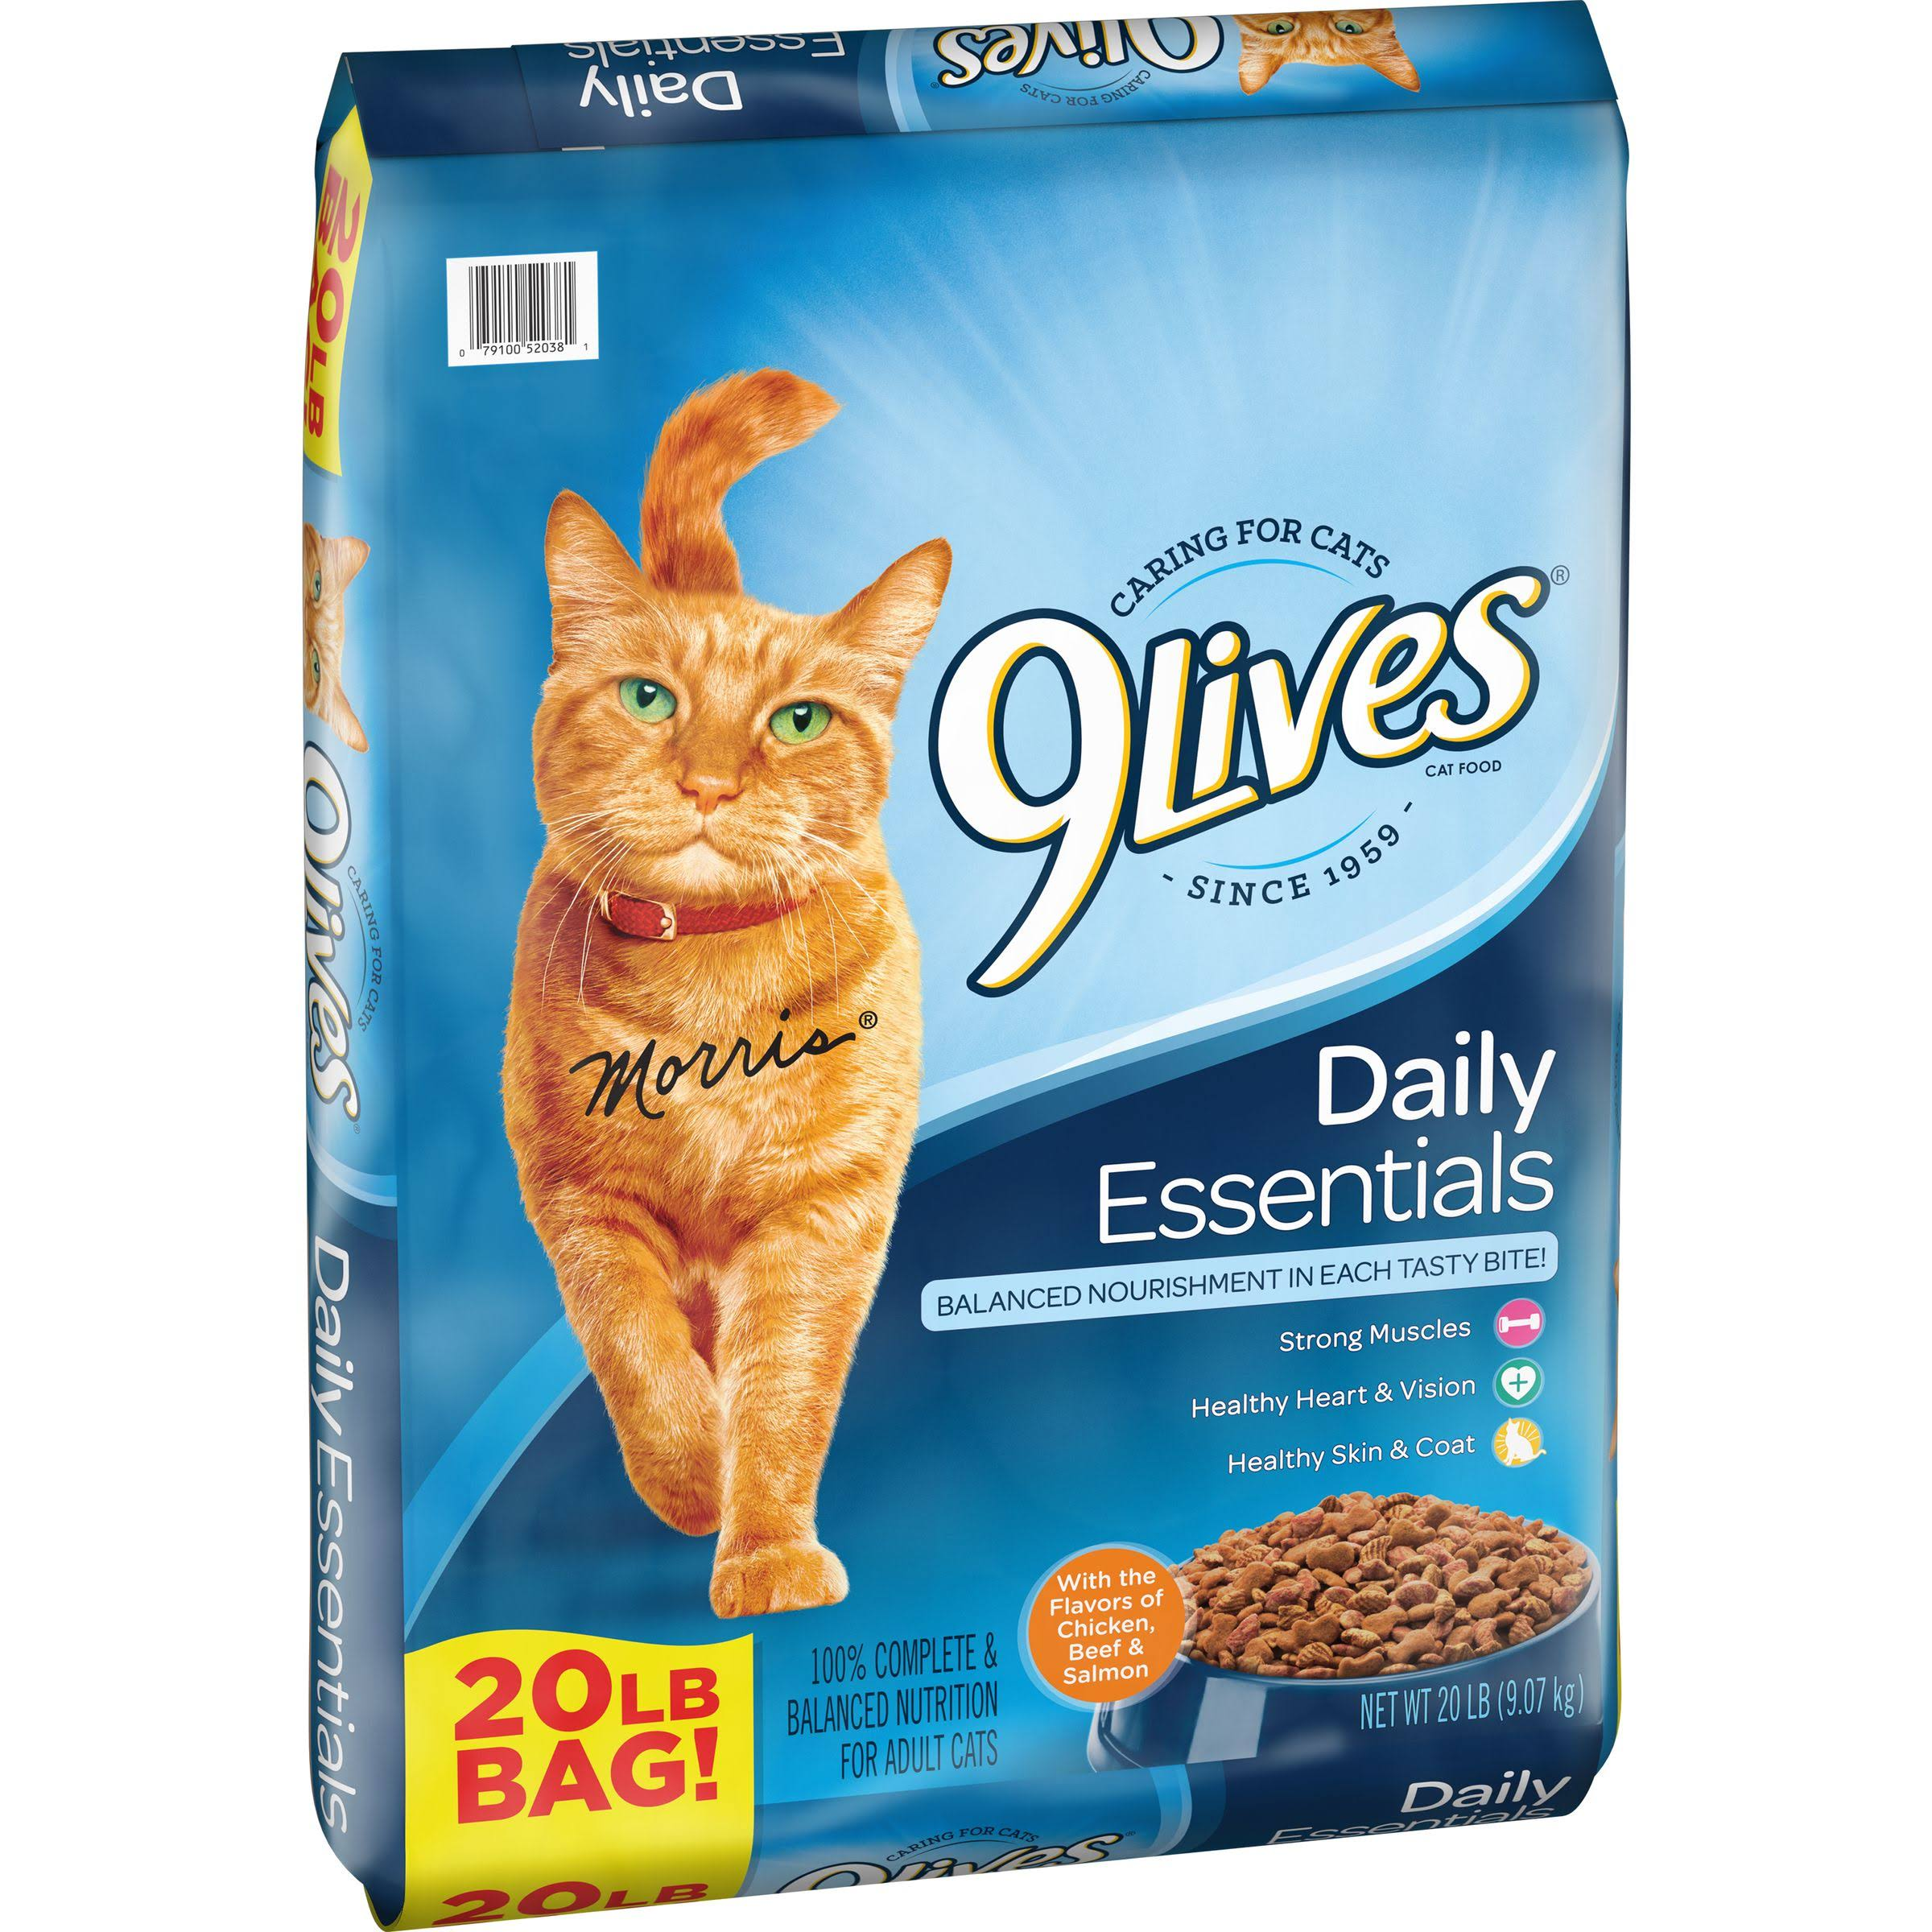 9Lives Daily Essentials Dry Cat Food - Salmon, Chicken and Beef, 20lbs